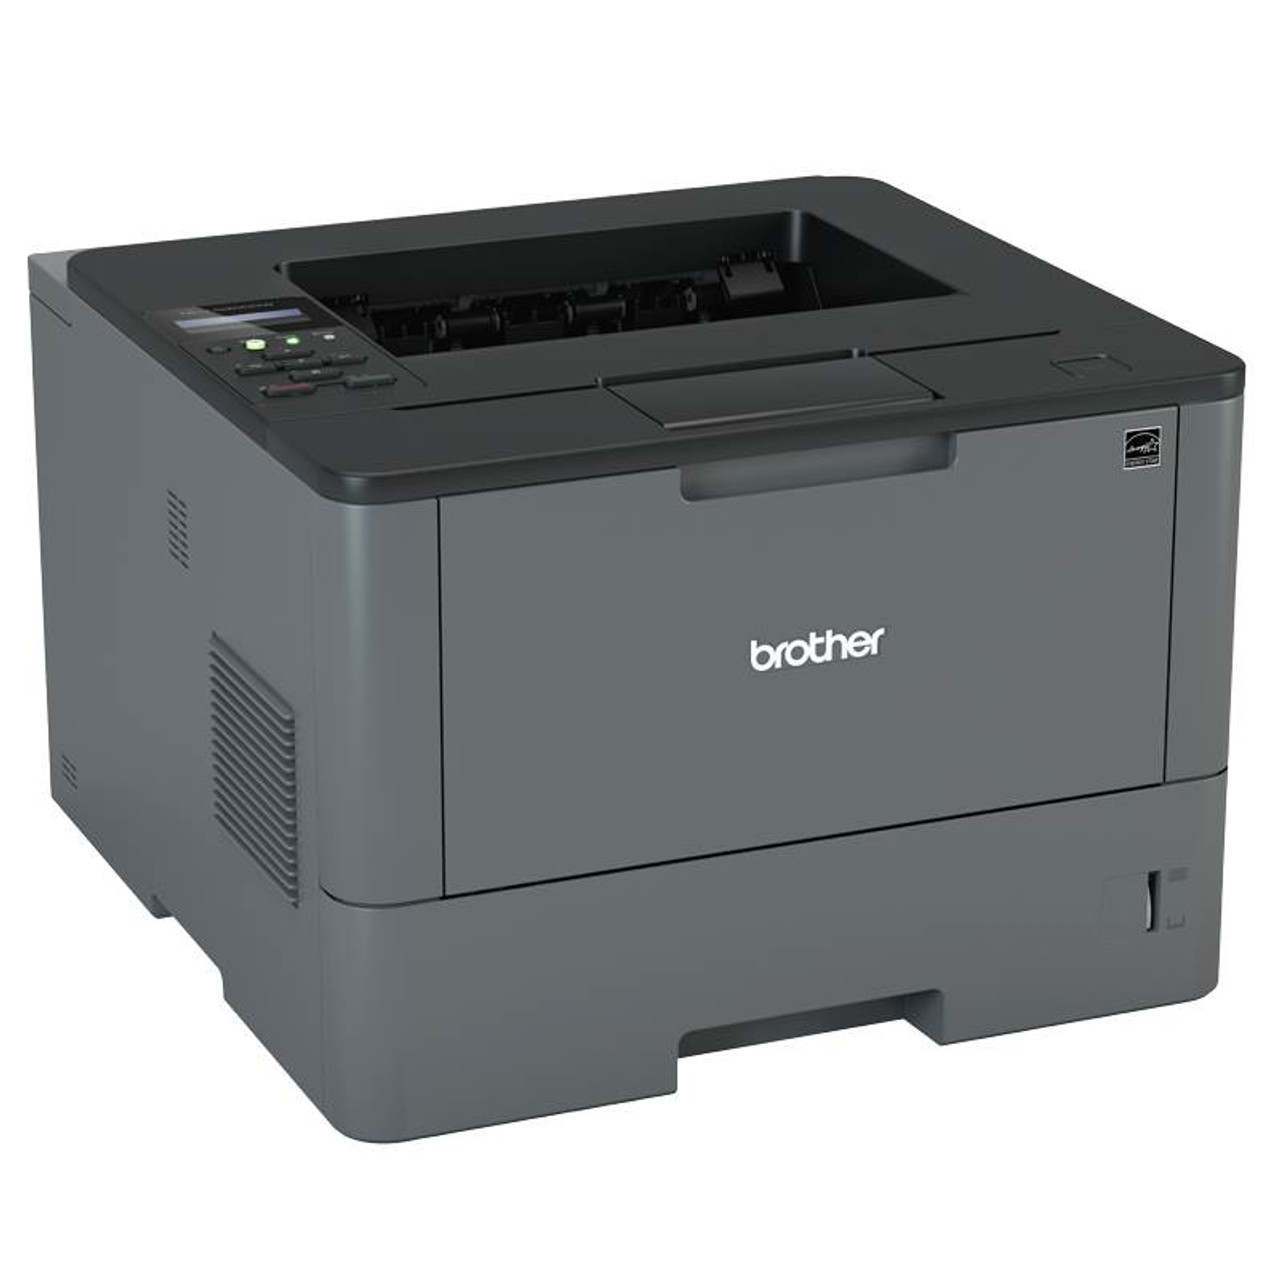 Product image for Brother HL-L5200DW Monochrome Wireless Laser Printer   CX Computer Superstore